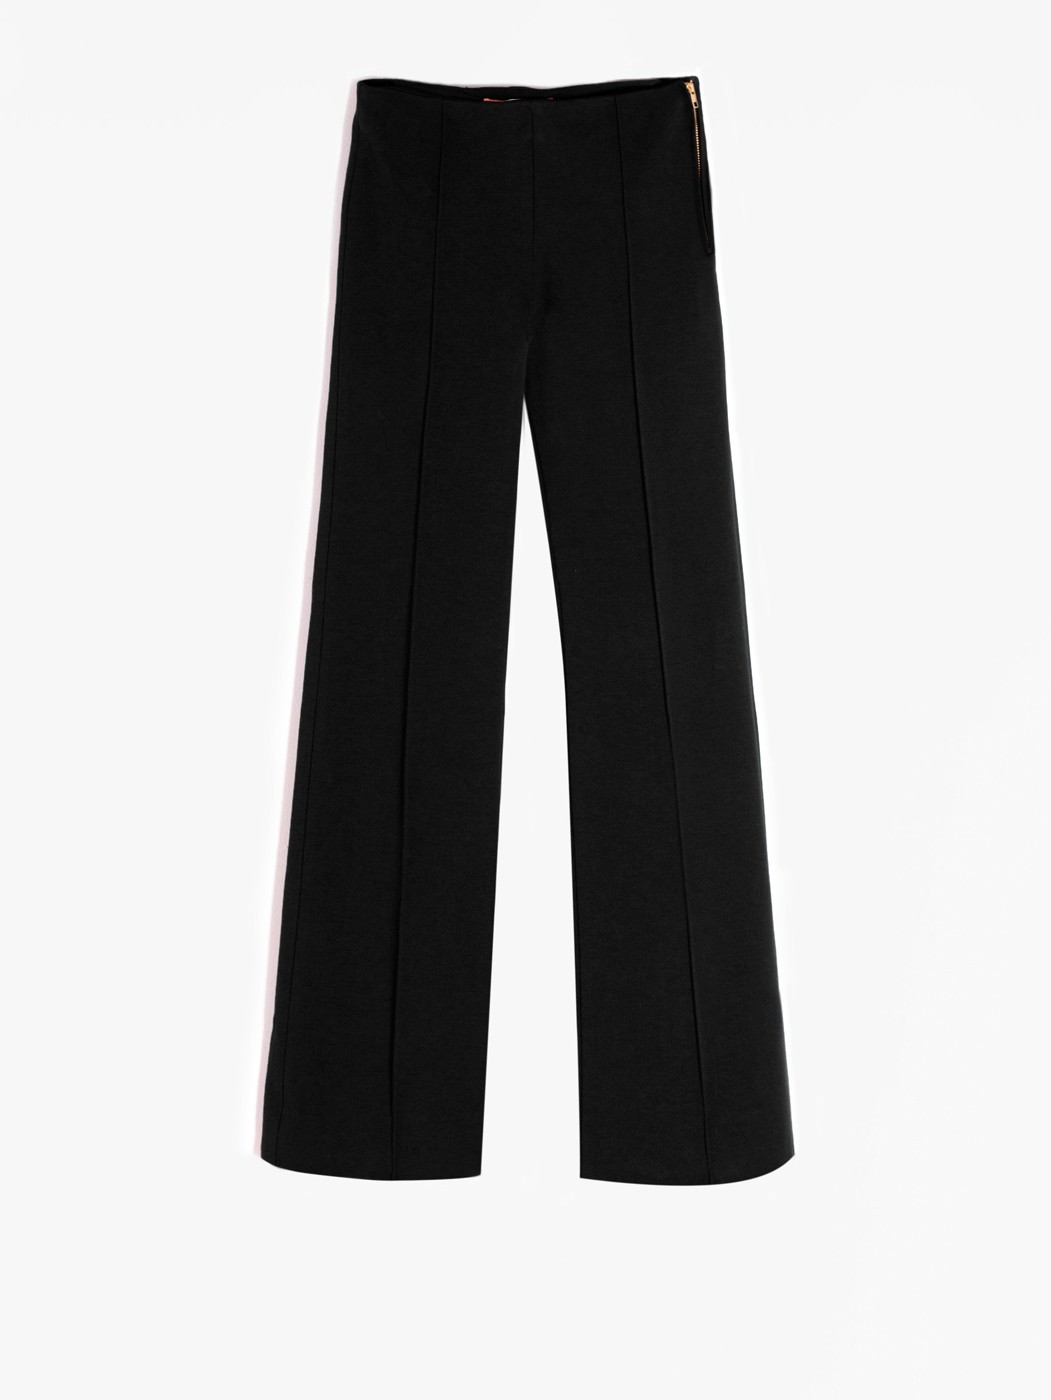 PANTALON GIULLIA BLACK